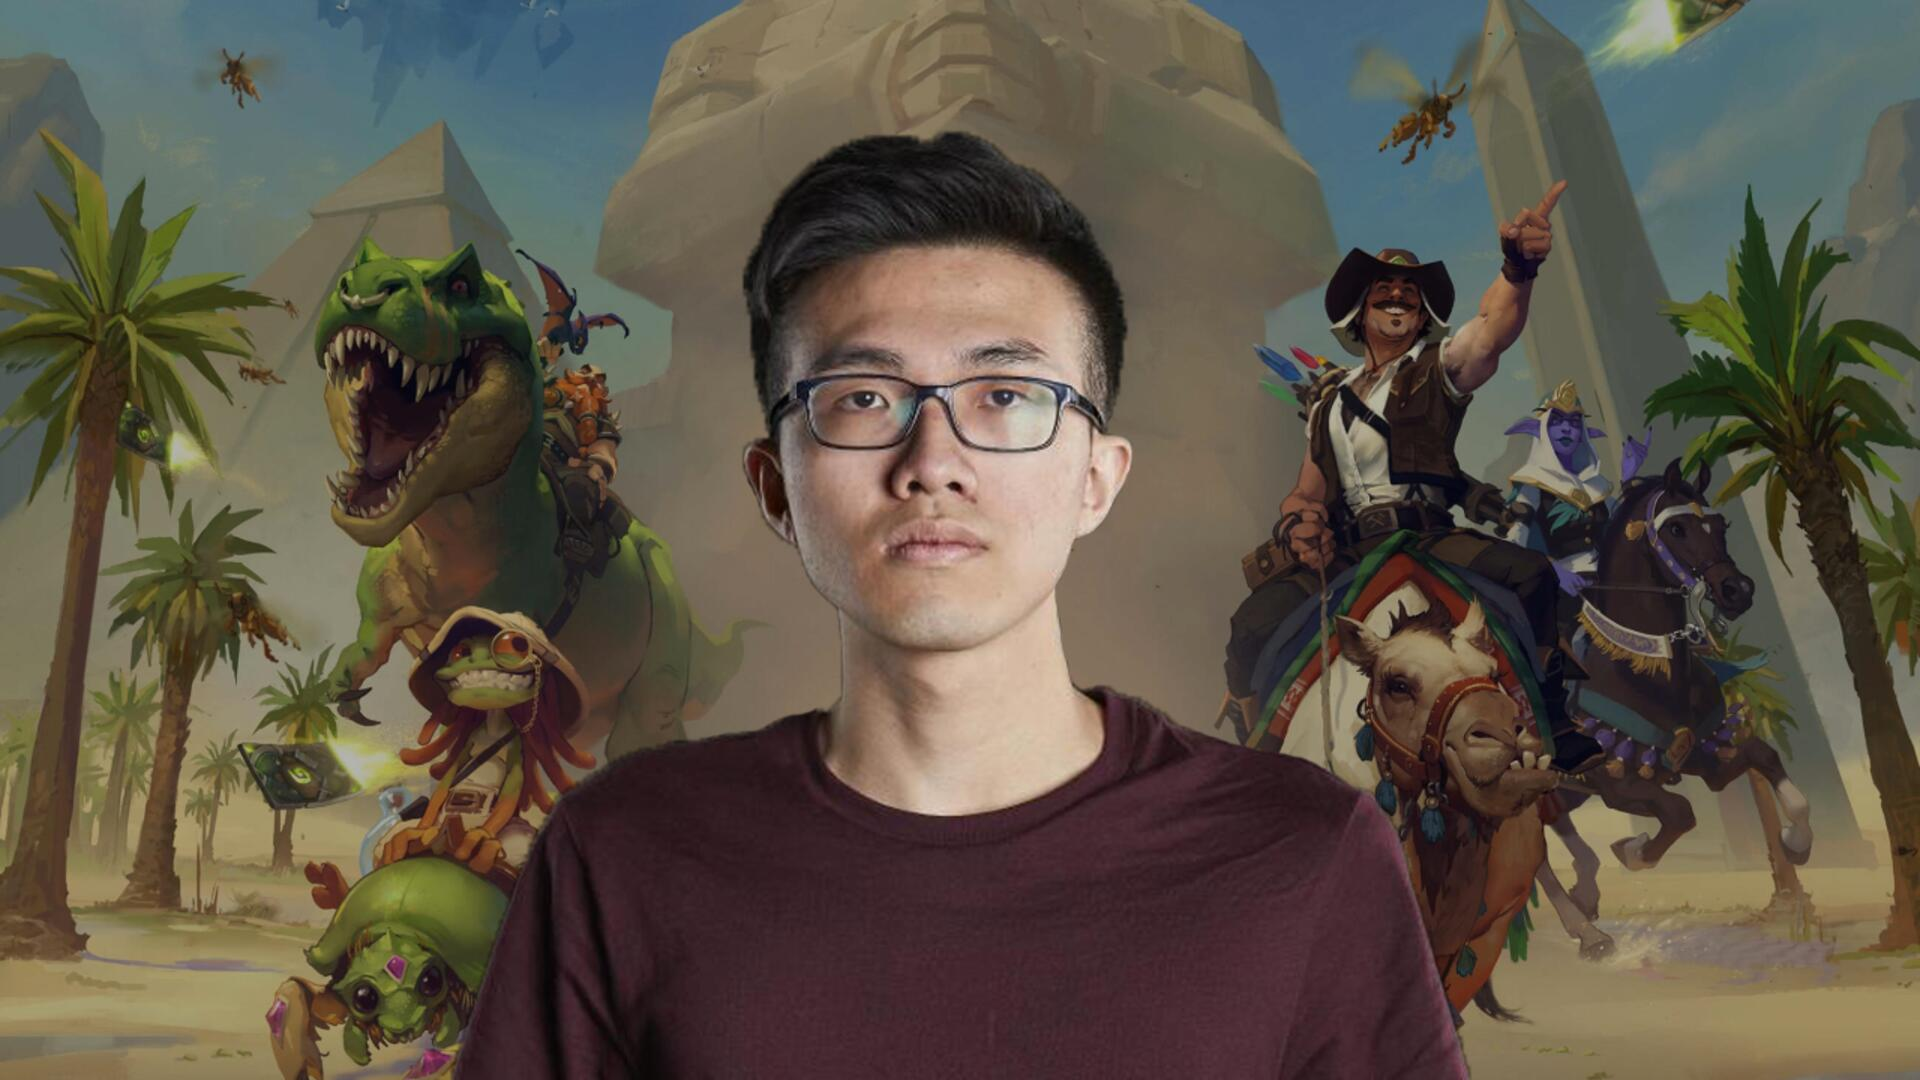 Blizzard Suspends Hearthstone Player For Voicing Support of Hong Kong Protests [Update]